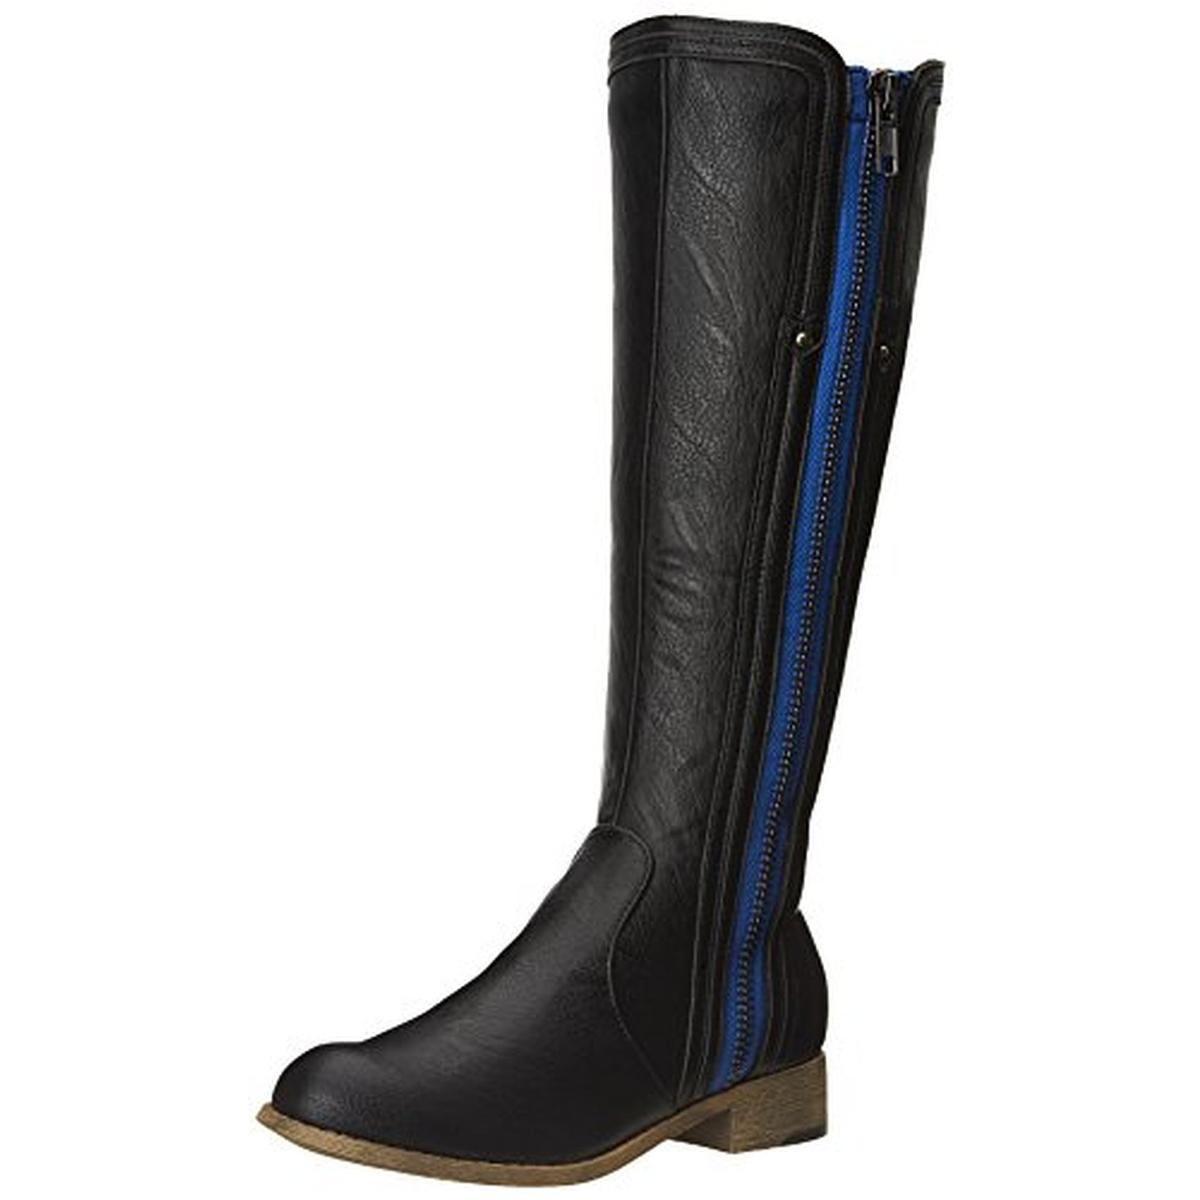 Luichiny 1979 Womens Phone Booth Faux Leather Knee High Riding Boots Shoes BHFO